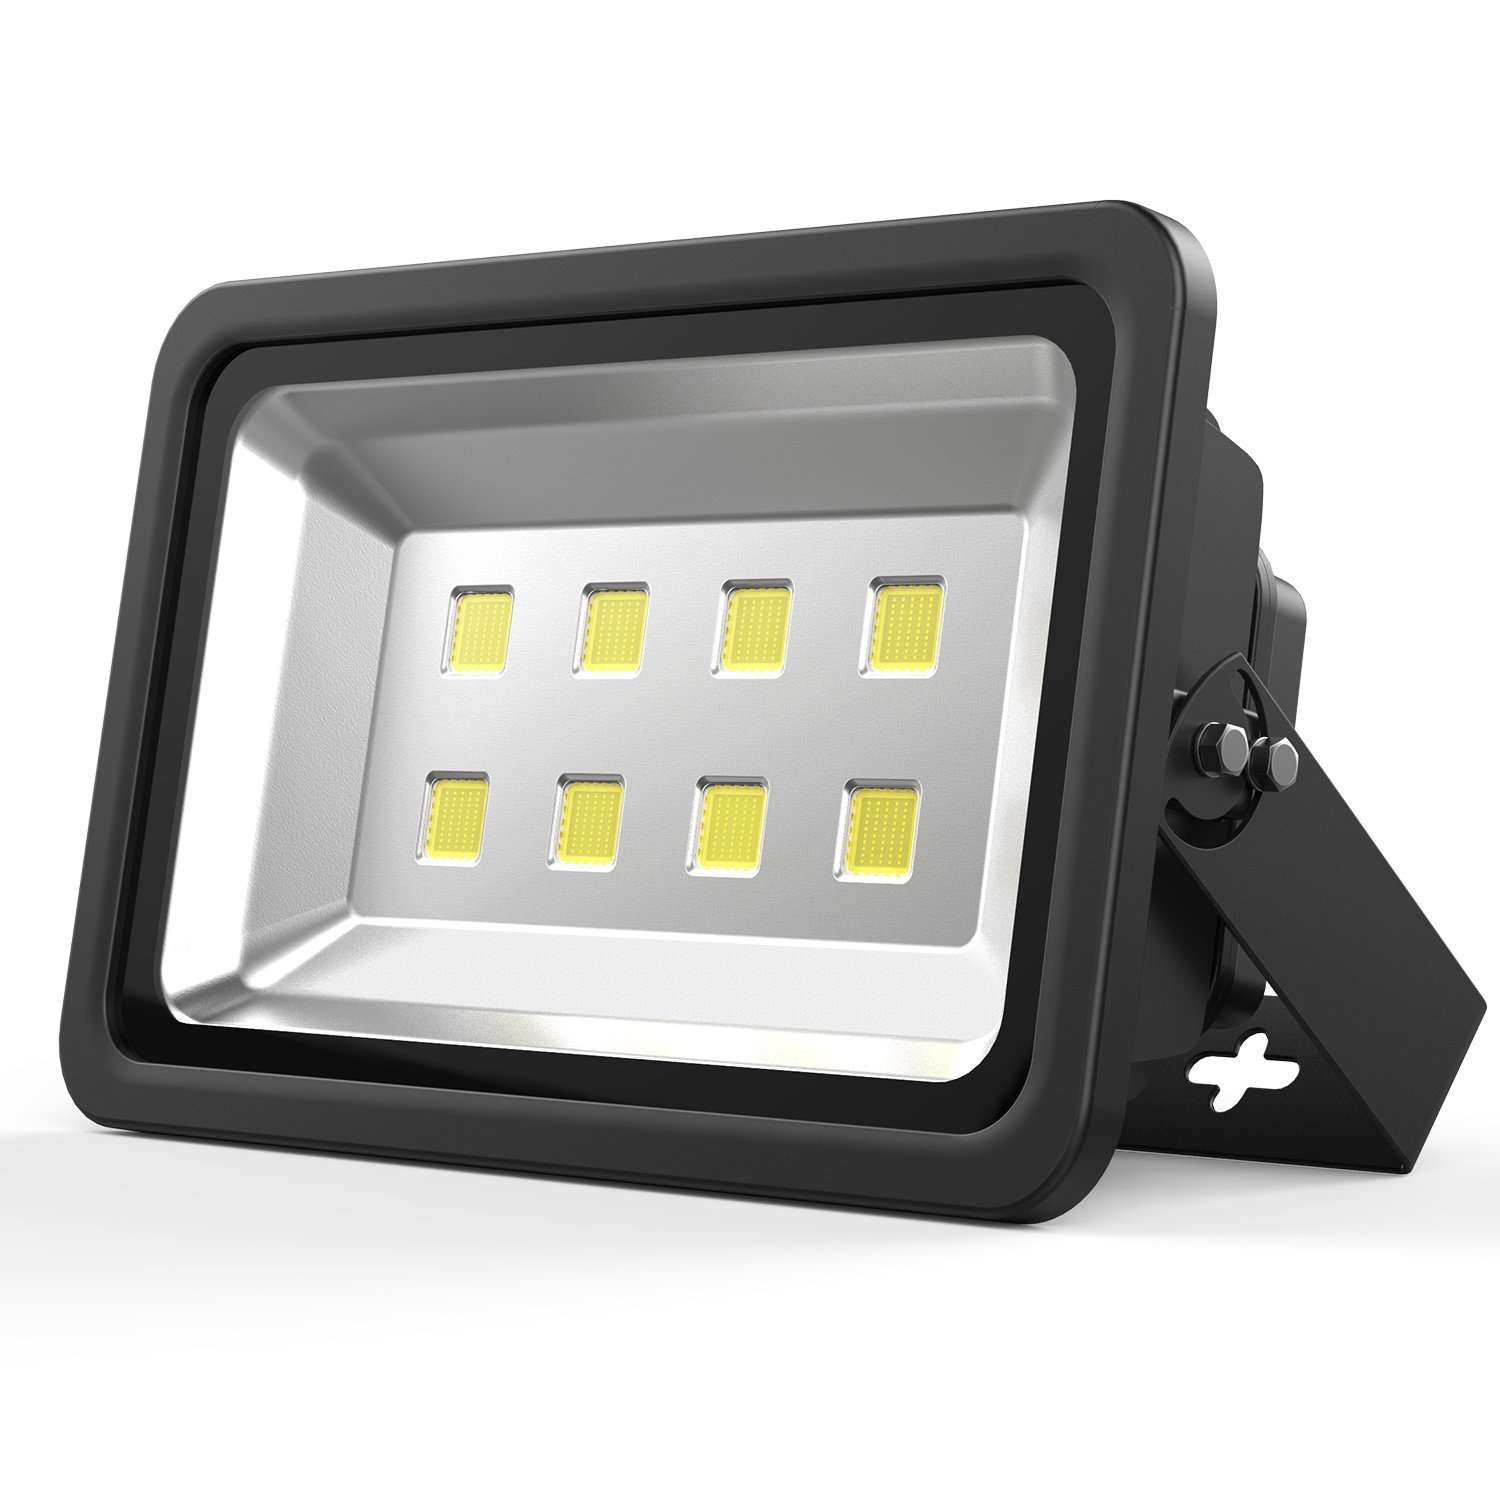 Outdoor LED floodlight, 400W Bright Security Flood Light Waterproof IP65 40000lm 6000K Daylight White, AC85-265V, 20000W Halogen Equivalent flood lighting for Yard, Party, Playground, Warehouse Black